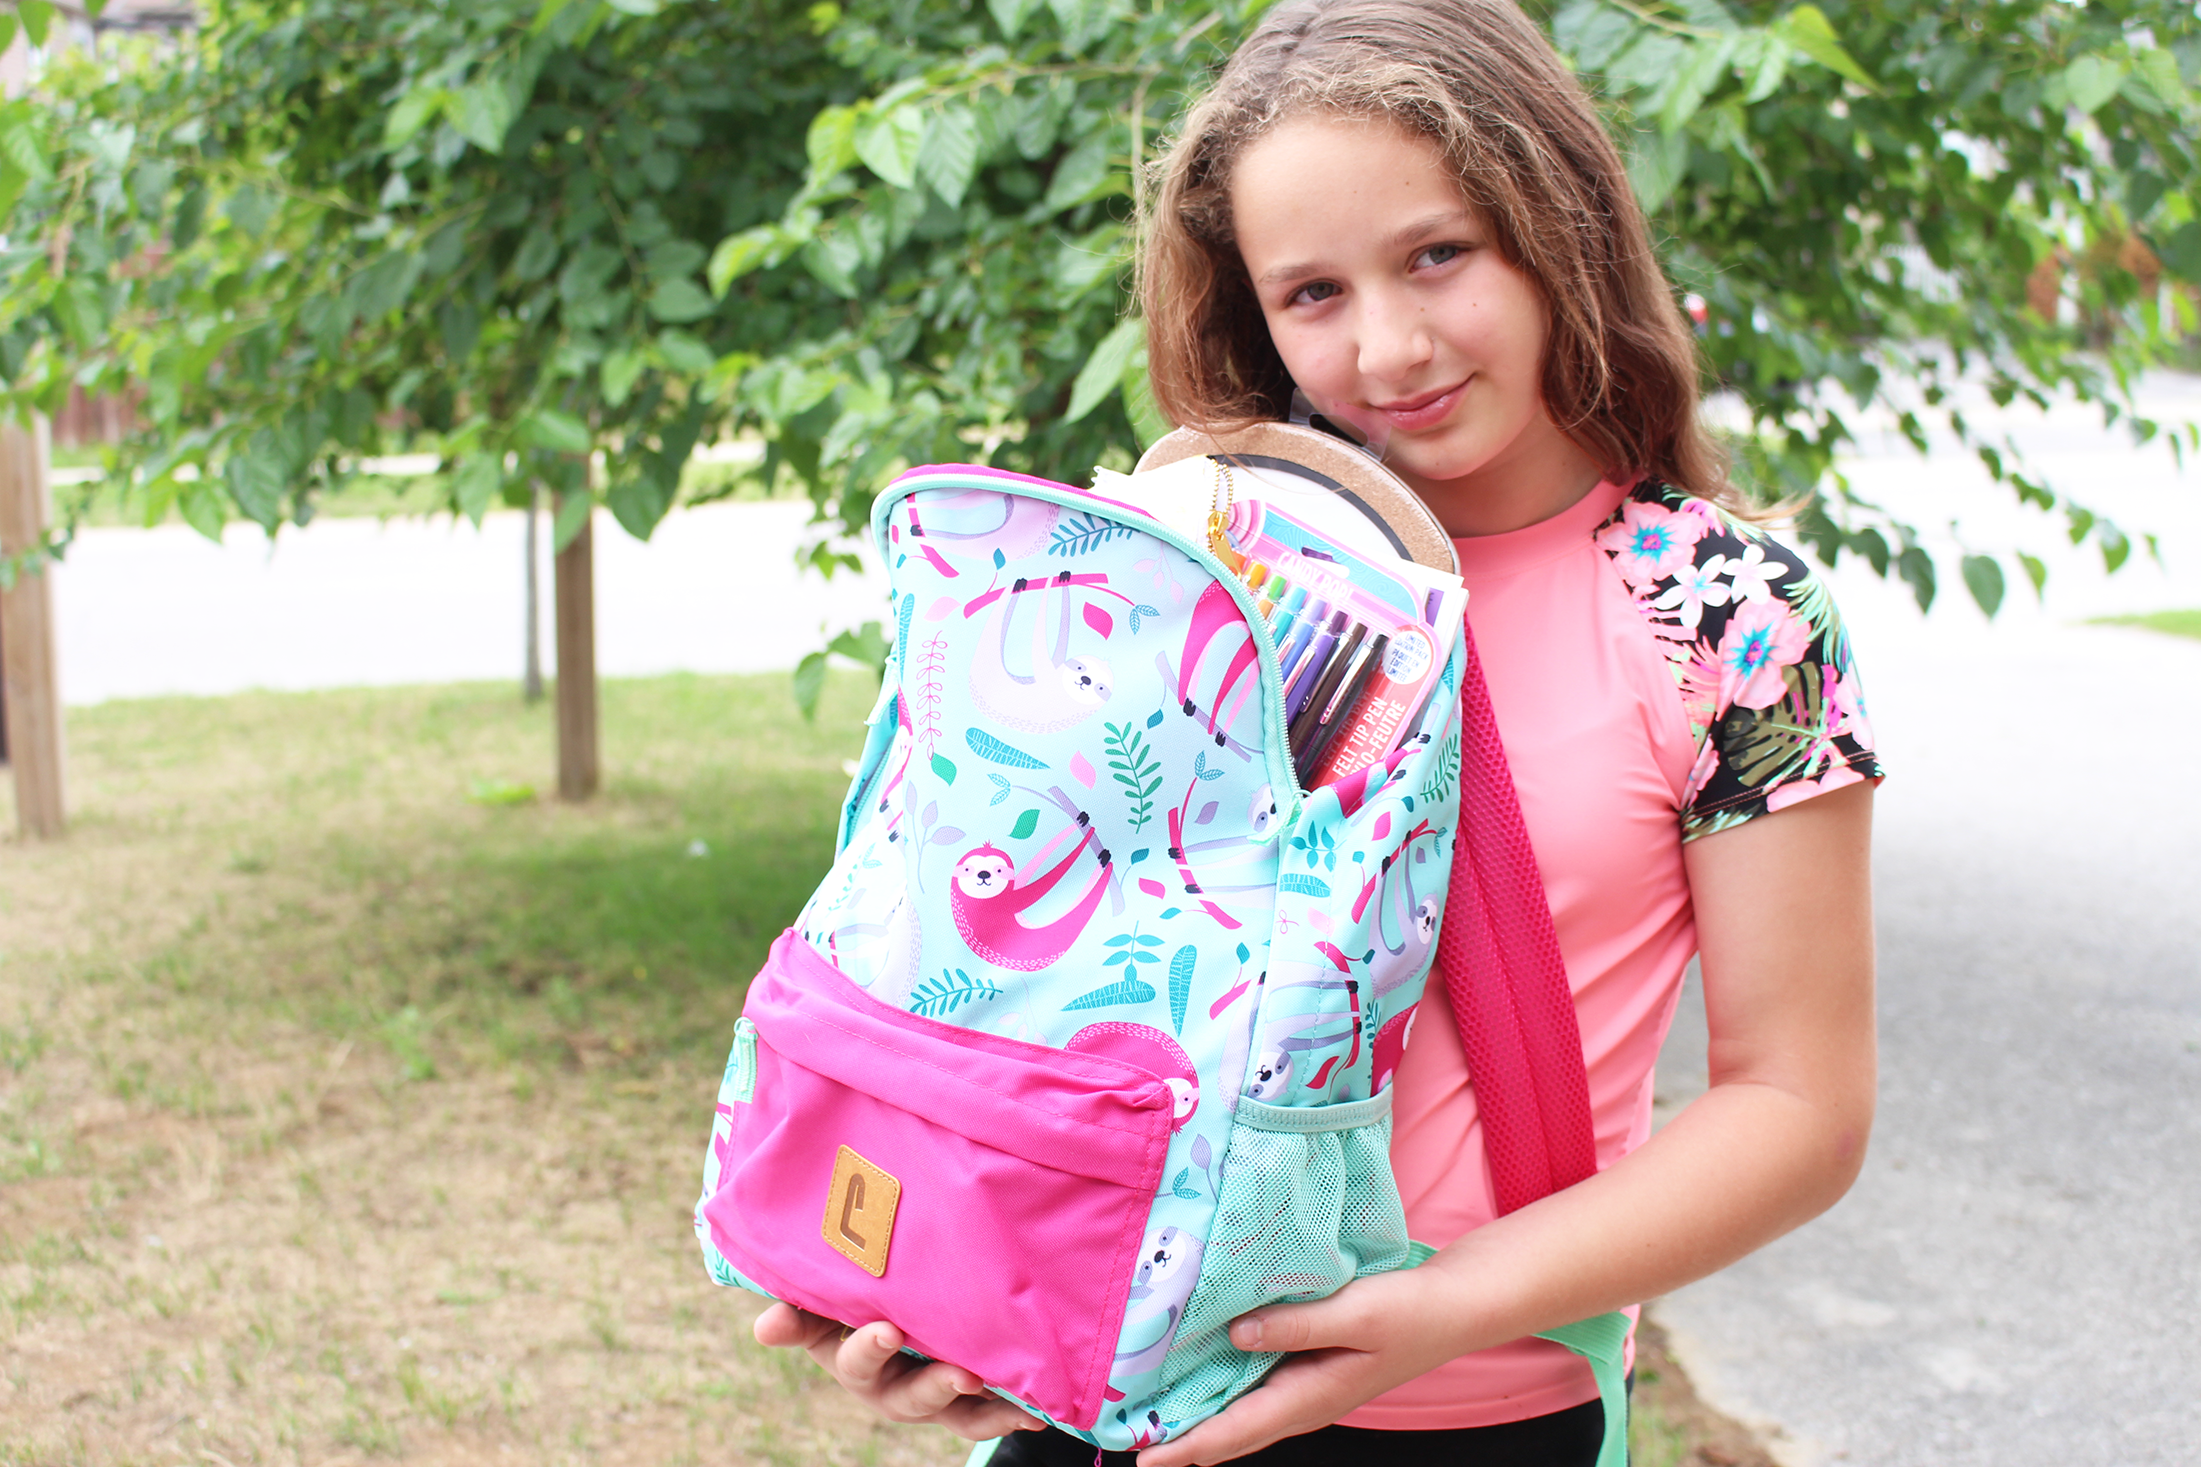 Get The Kids Fully Prepared for Back-to-School with Staples